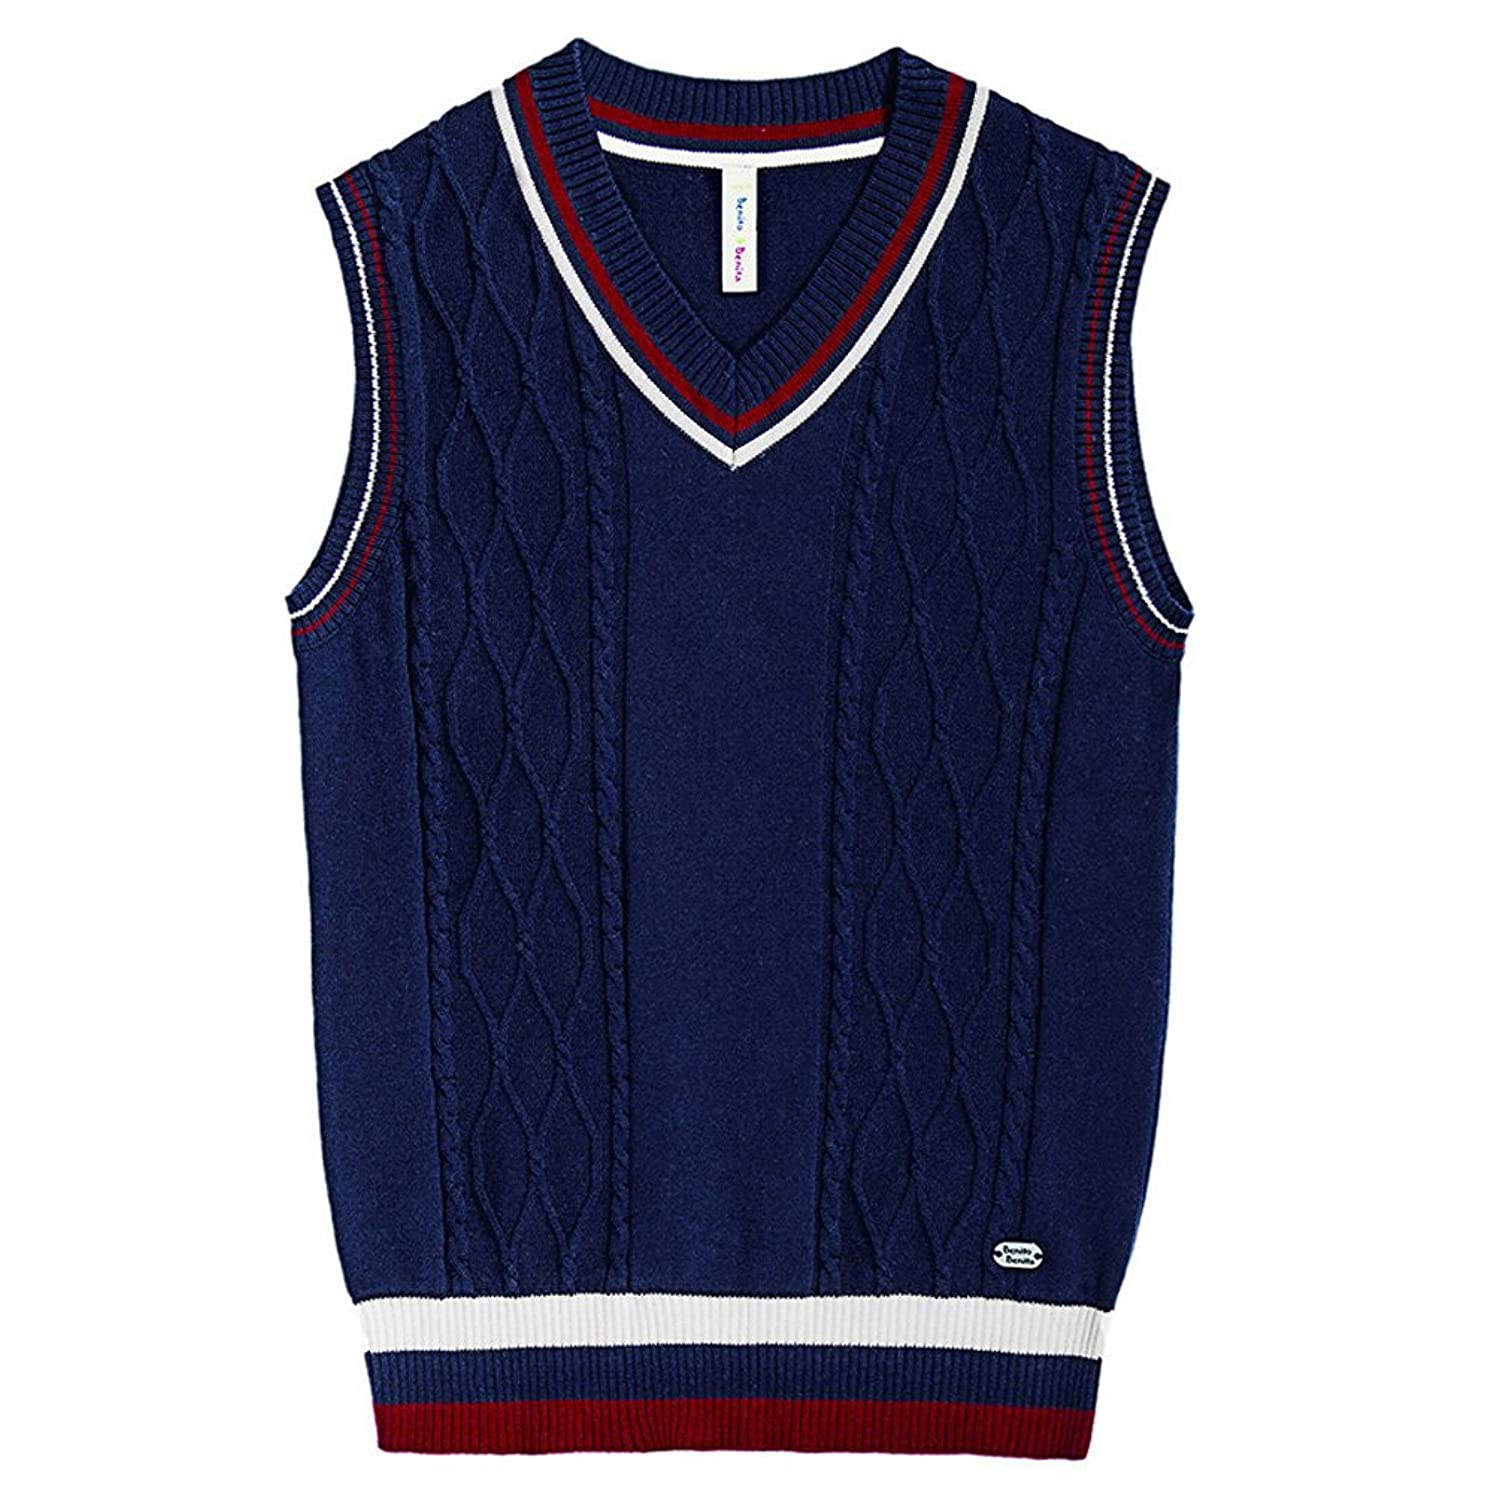 Amazon.com: Gioberti Boy's V-Neck Cable Knit Sweater Vest: Clothing